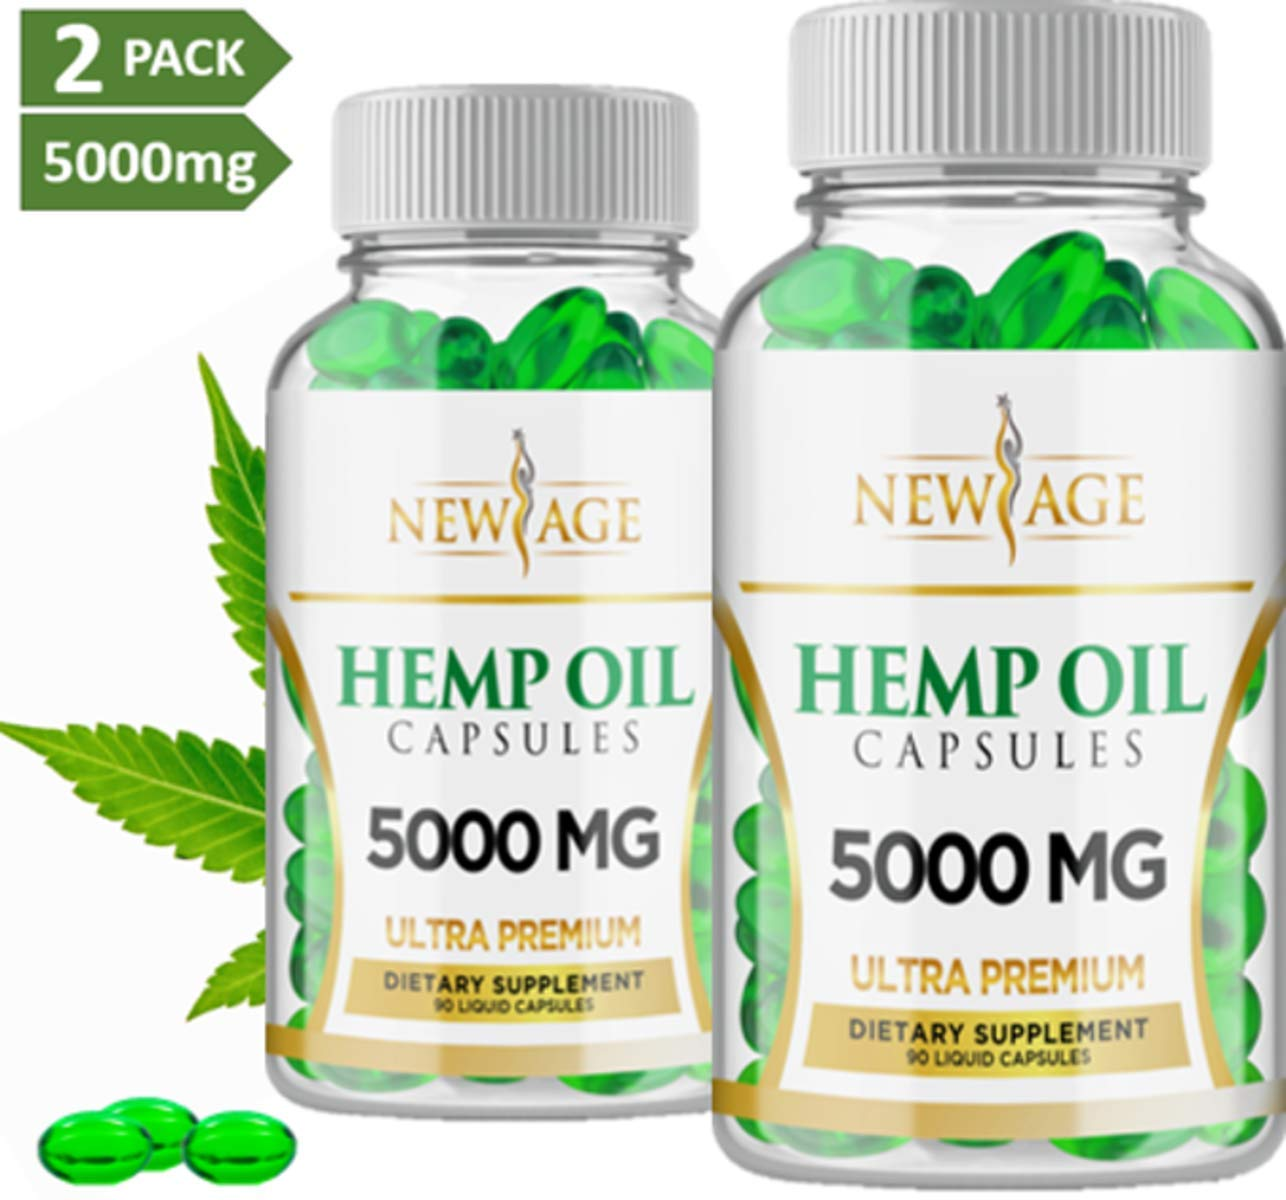 (2 Pack) Hemp Oil Capsules Pills - 5000 MG of Pure Hemp Extract Per Bottle - Pain, Stress & Anxiety Relief - Natural Sleep & Mood Support - Made in The USA - Maximum Value - Rich in Omega 3,6,& 9, by New Age